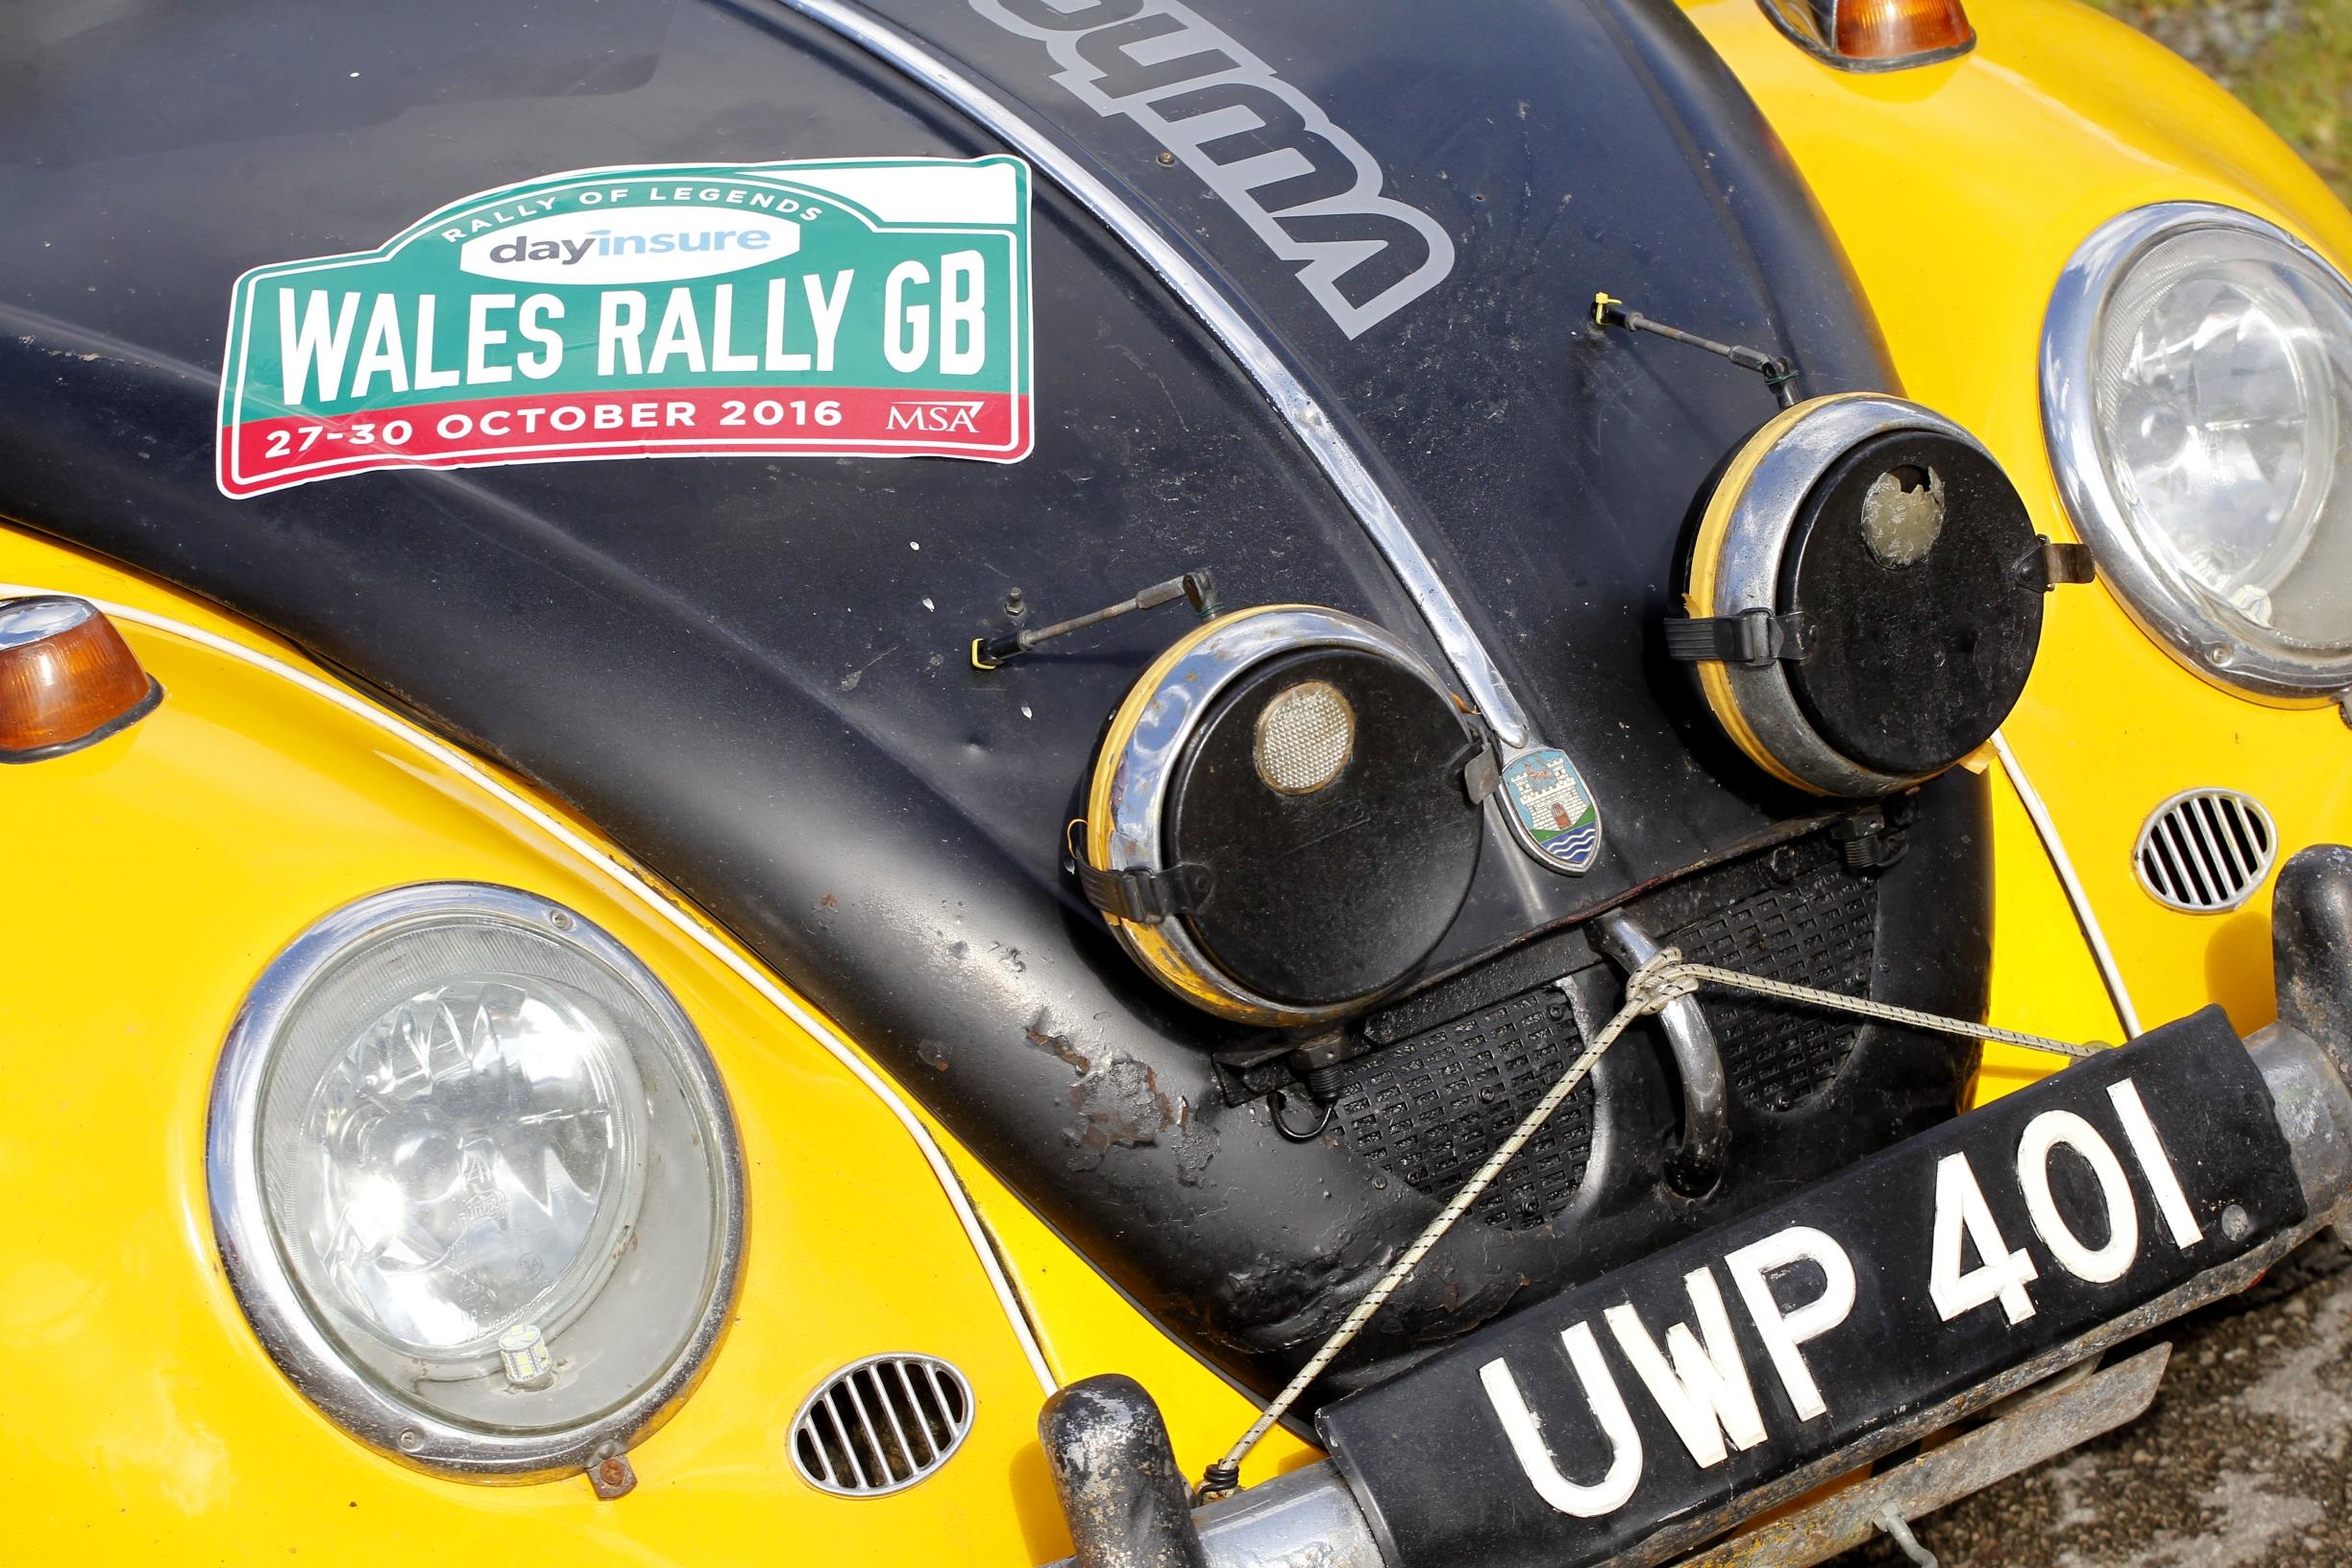 Bertie the Bettle contesting the 2015 WRGB National Rally 3